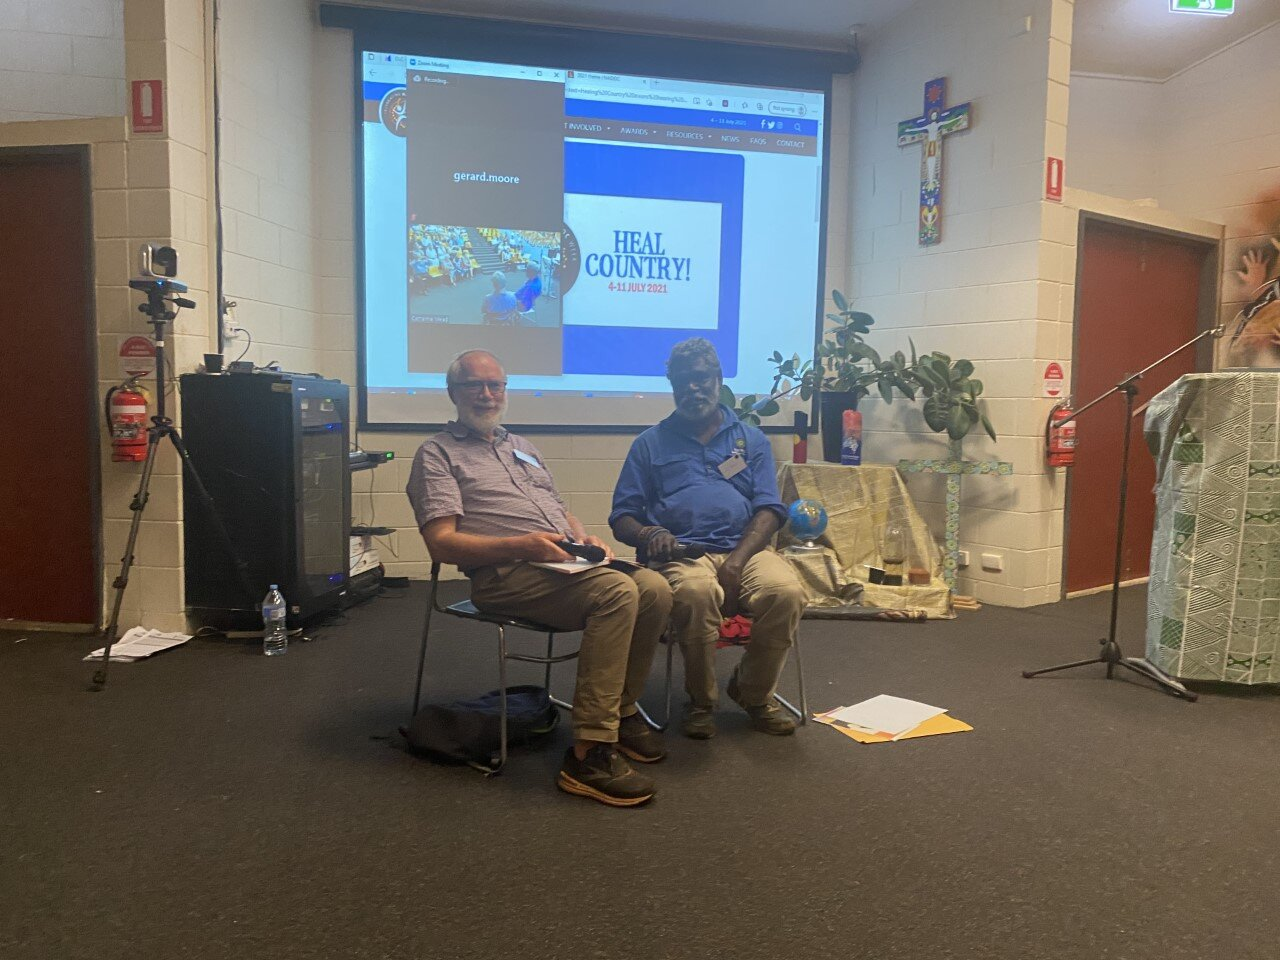 Left to right: Fr. Leo & William (from Wadeye Parish) during an interview at the Diocesan Leaders Gathering on Friday the 16th of July 2021